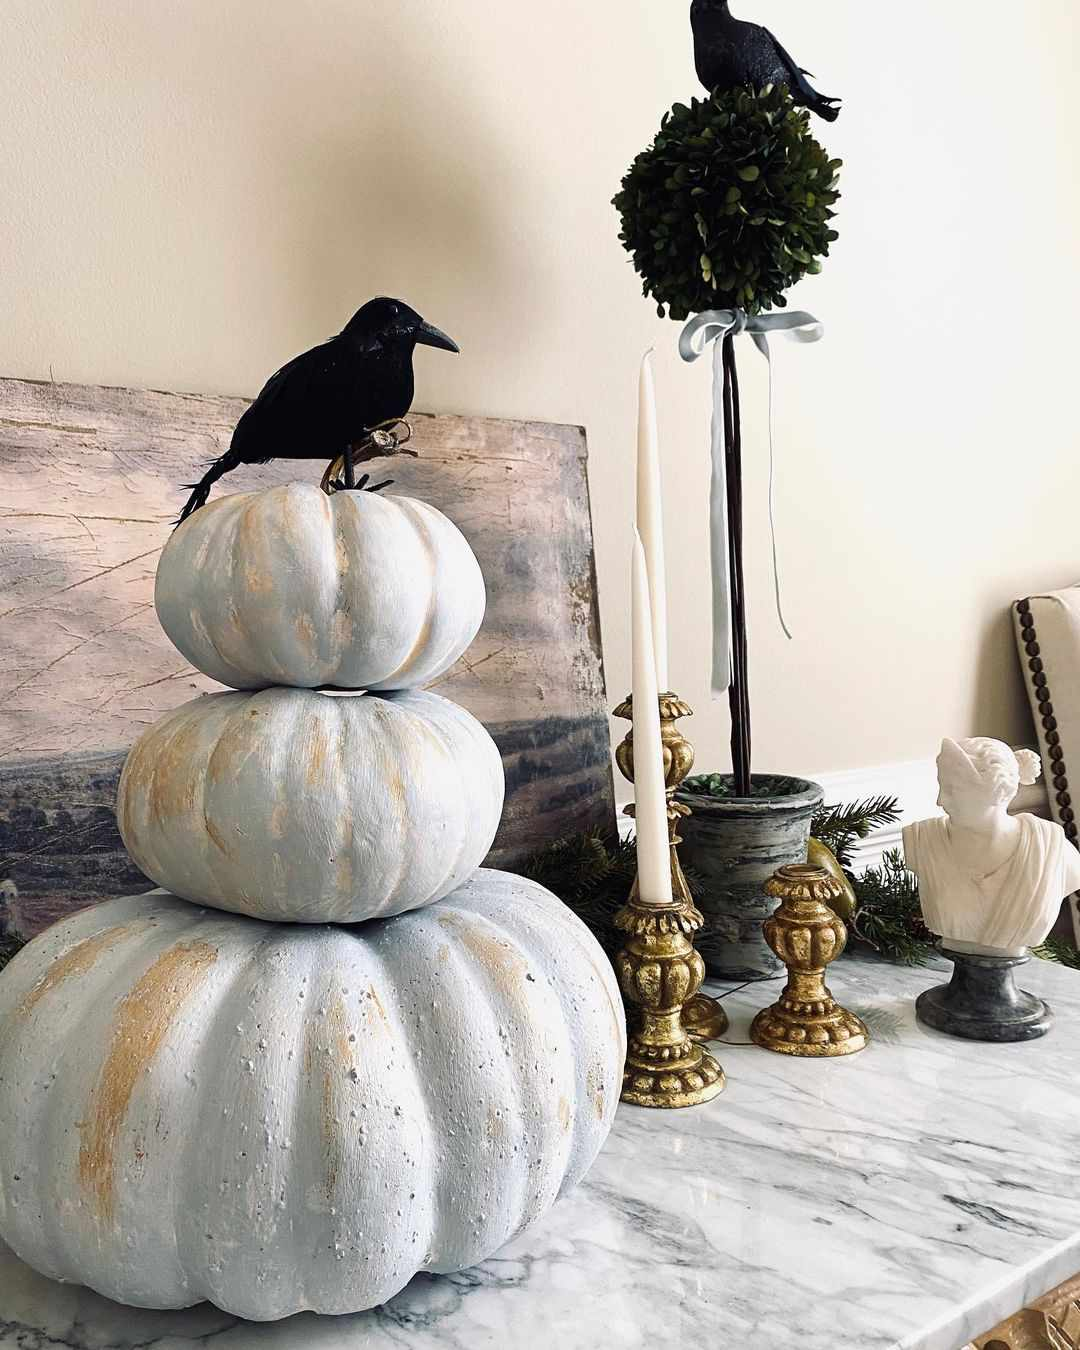 Pumpkins with crow on top